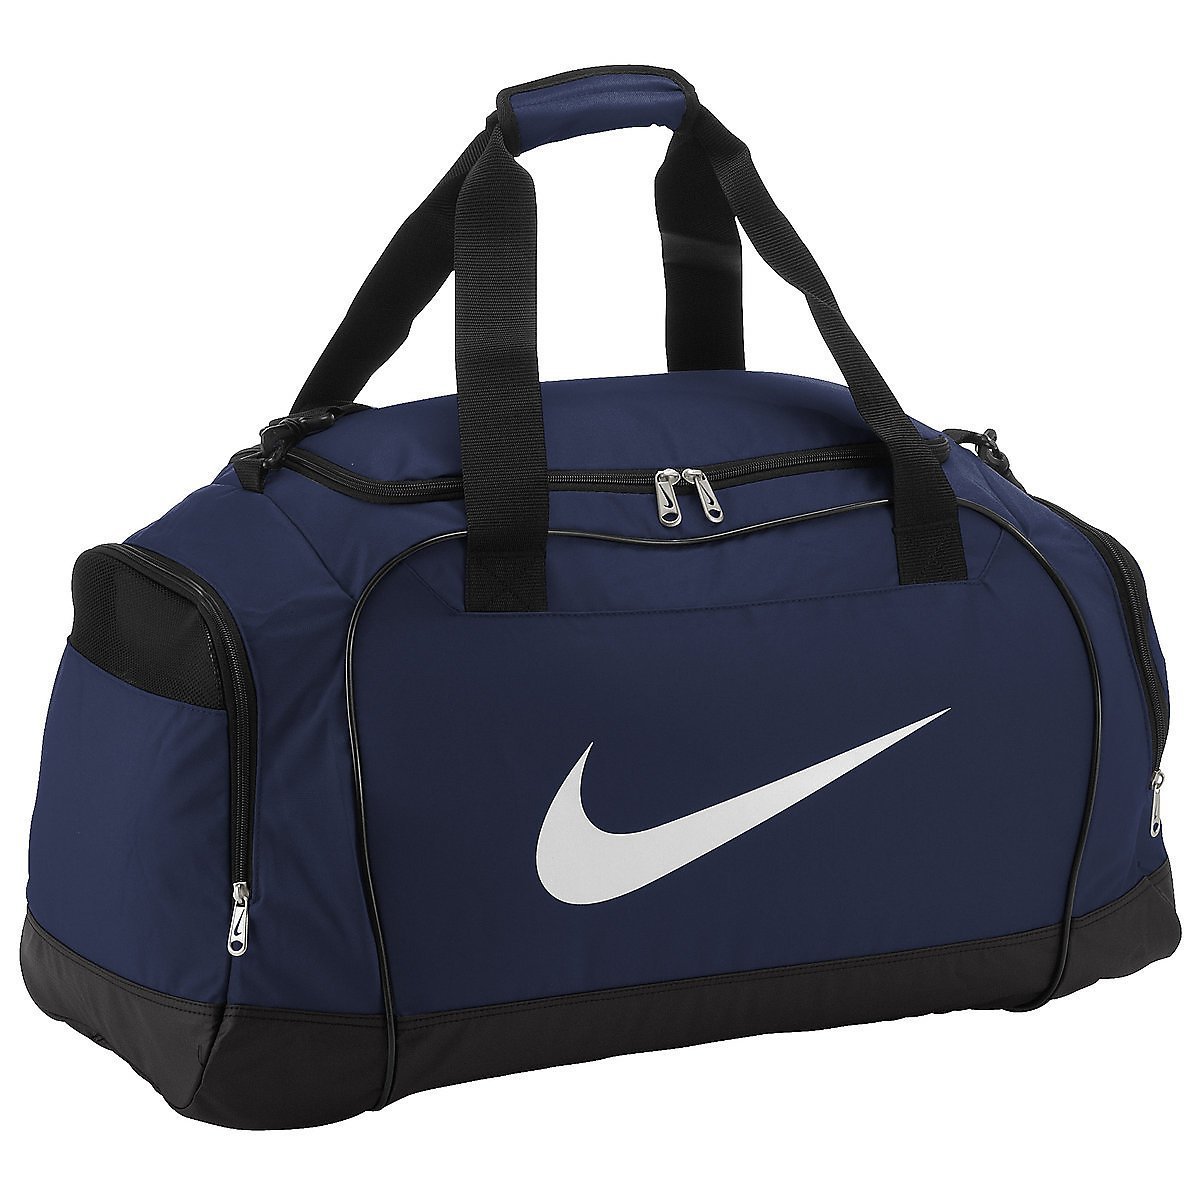 nike shoulder bag sports direct shoulder travel bag. Black Bedroom Furniture Sets. Home Design Ideas